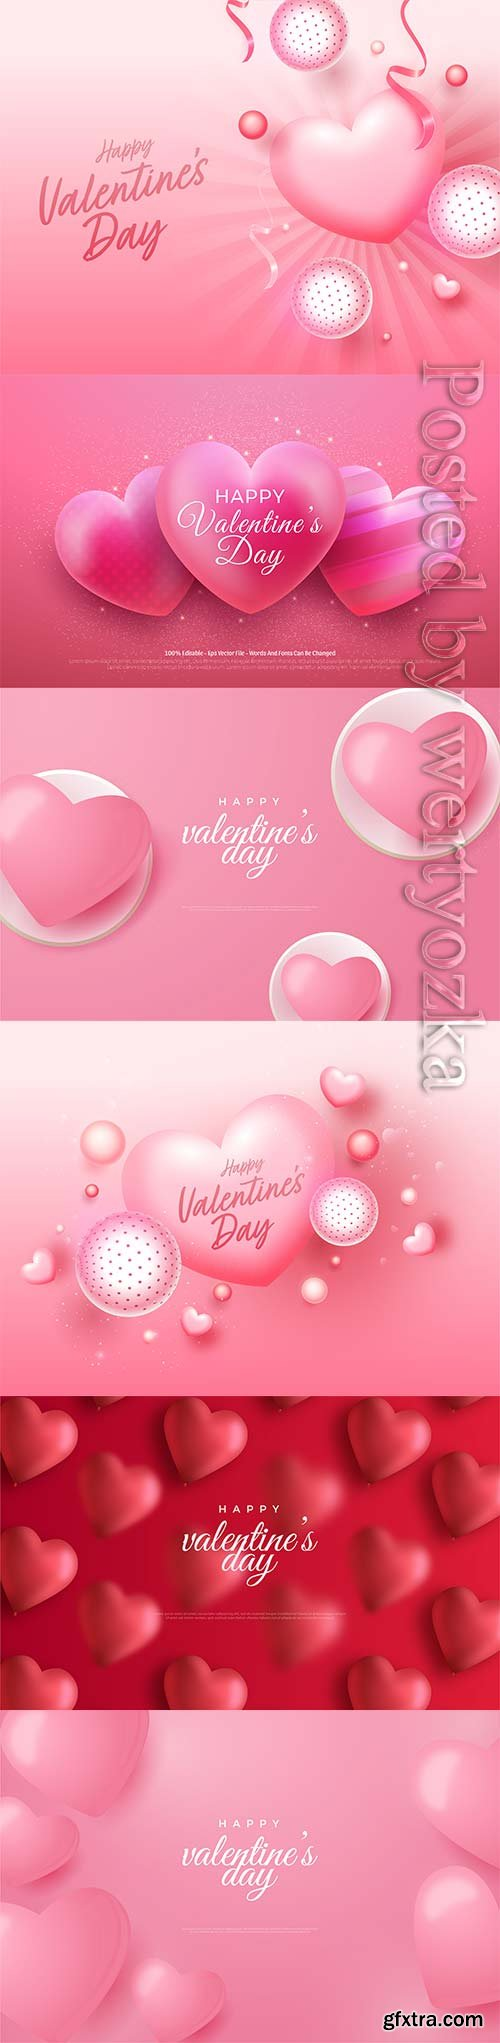 Valentine's day with realistic vector hearts